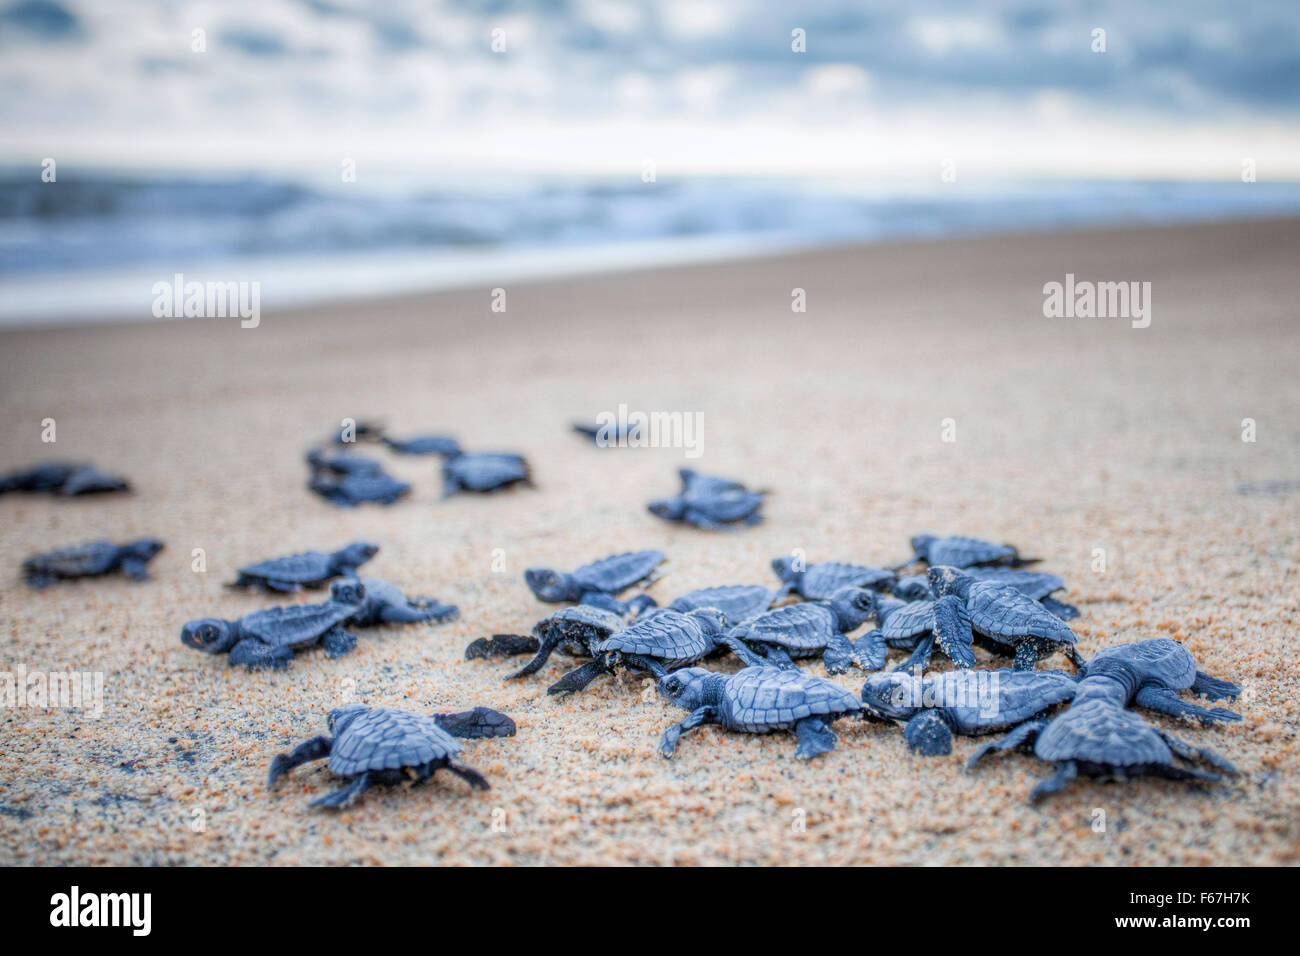 Baby Olive Ridley turtles head out to sea for the first time at Ixtapilla, Michoacan, Mexico. Stock Photo